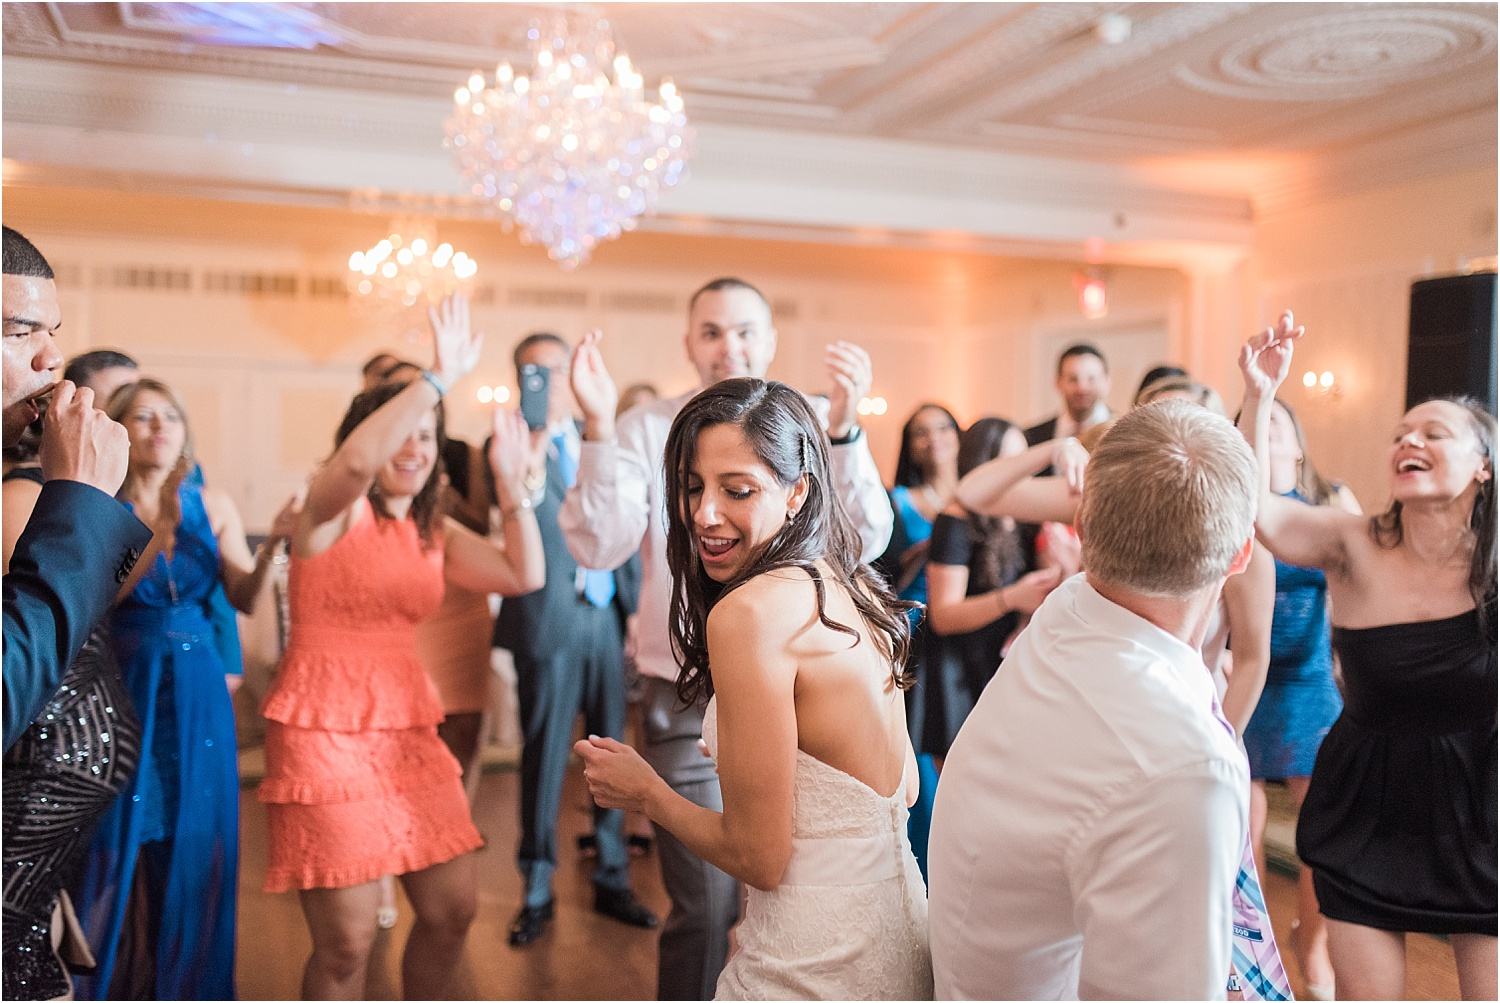 New Jersey wedding Photographer bright natural airy sweet soft wedding Photographer Faves-183.jpg